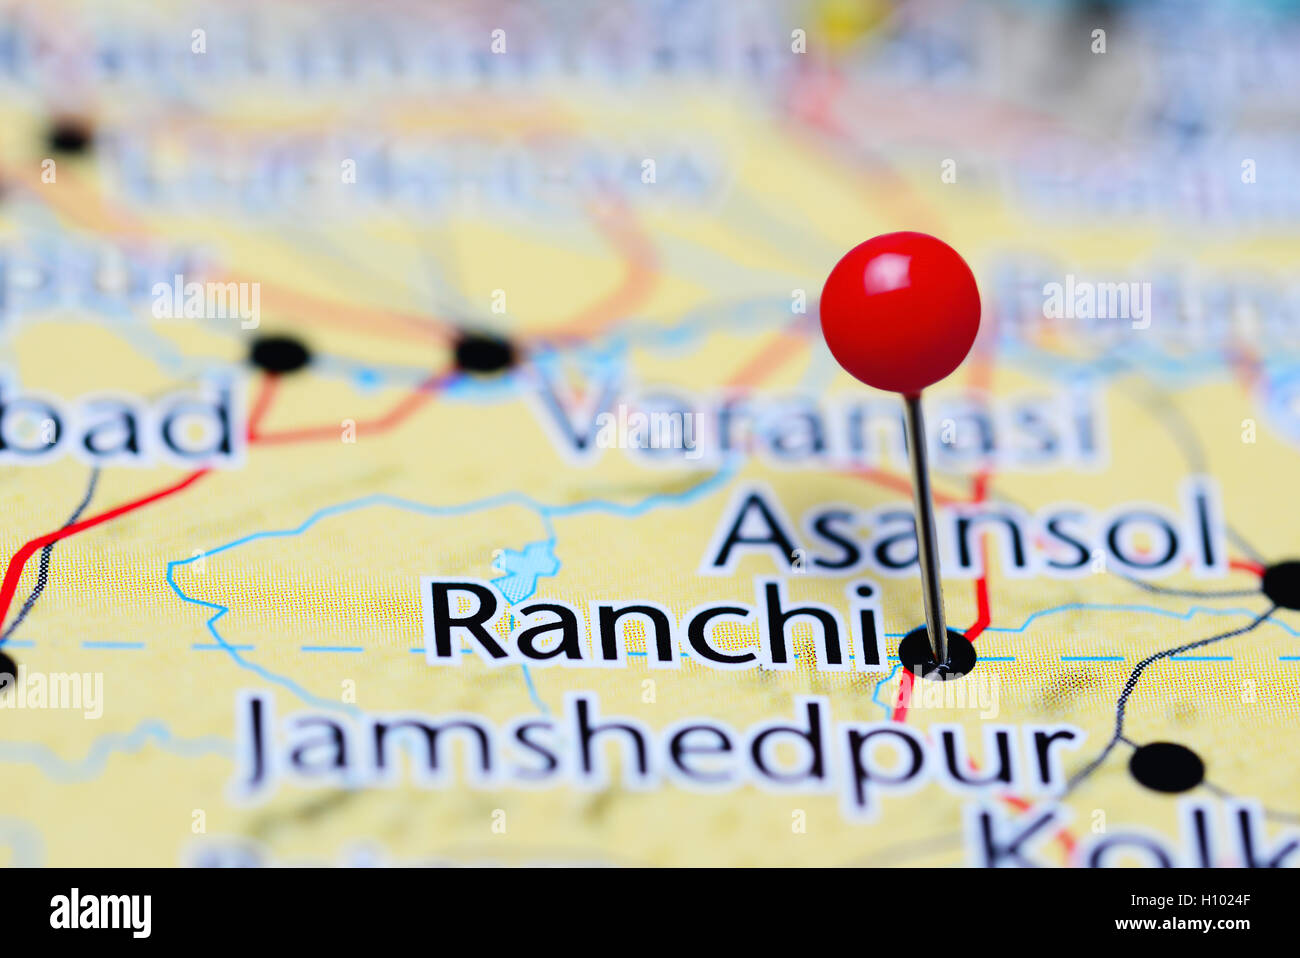 Location Of Ranchi In India Map.Ranchi City Stock Photos Ranchi City Stock Images Alamy